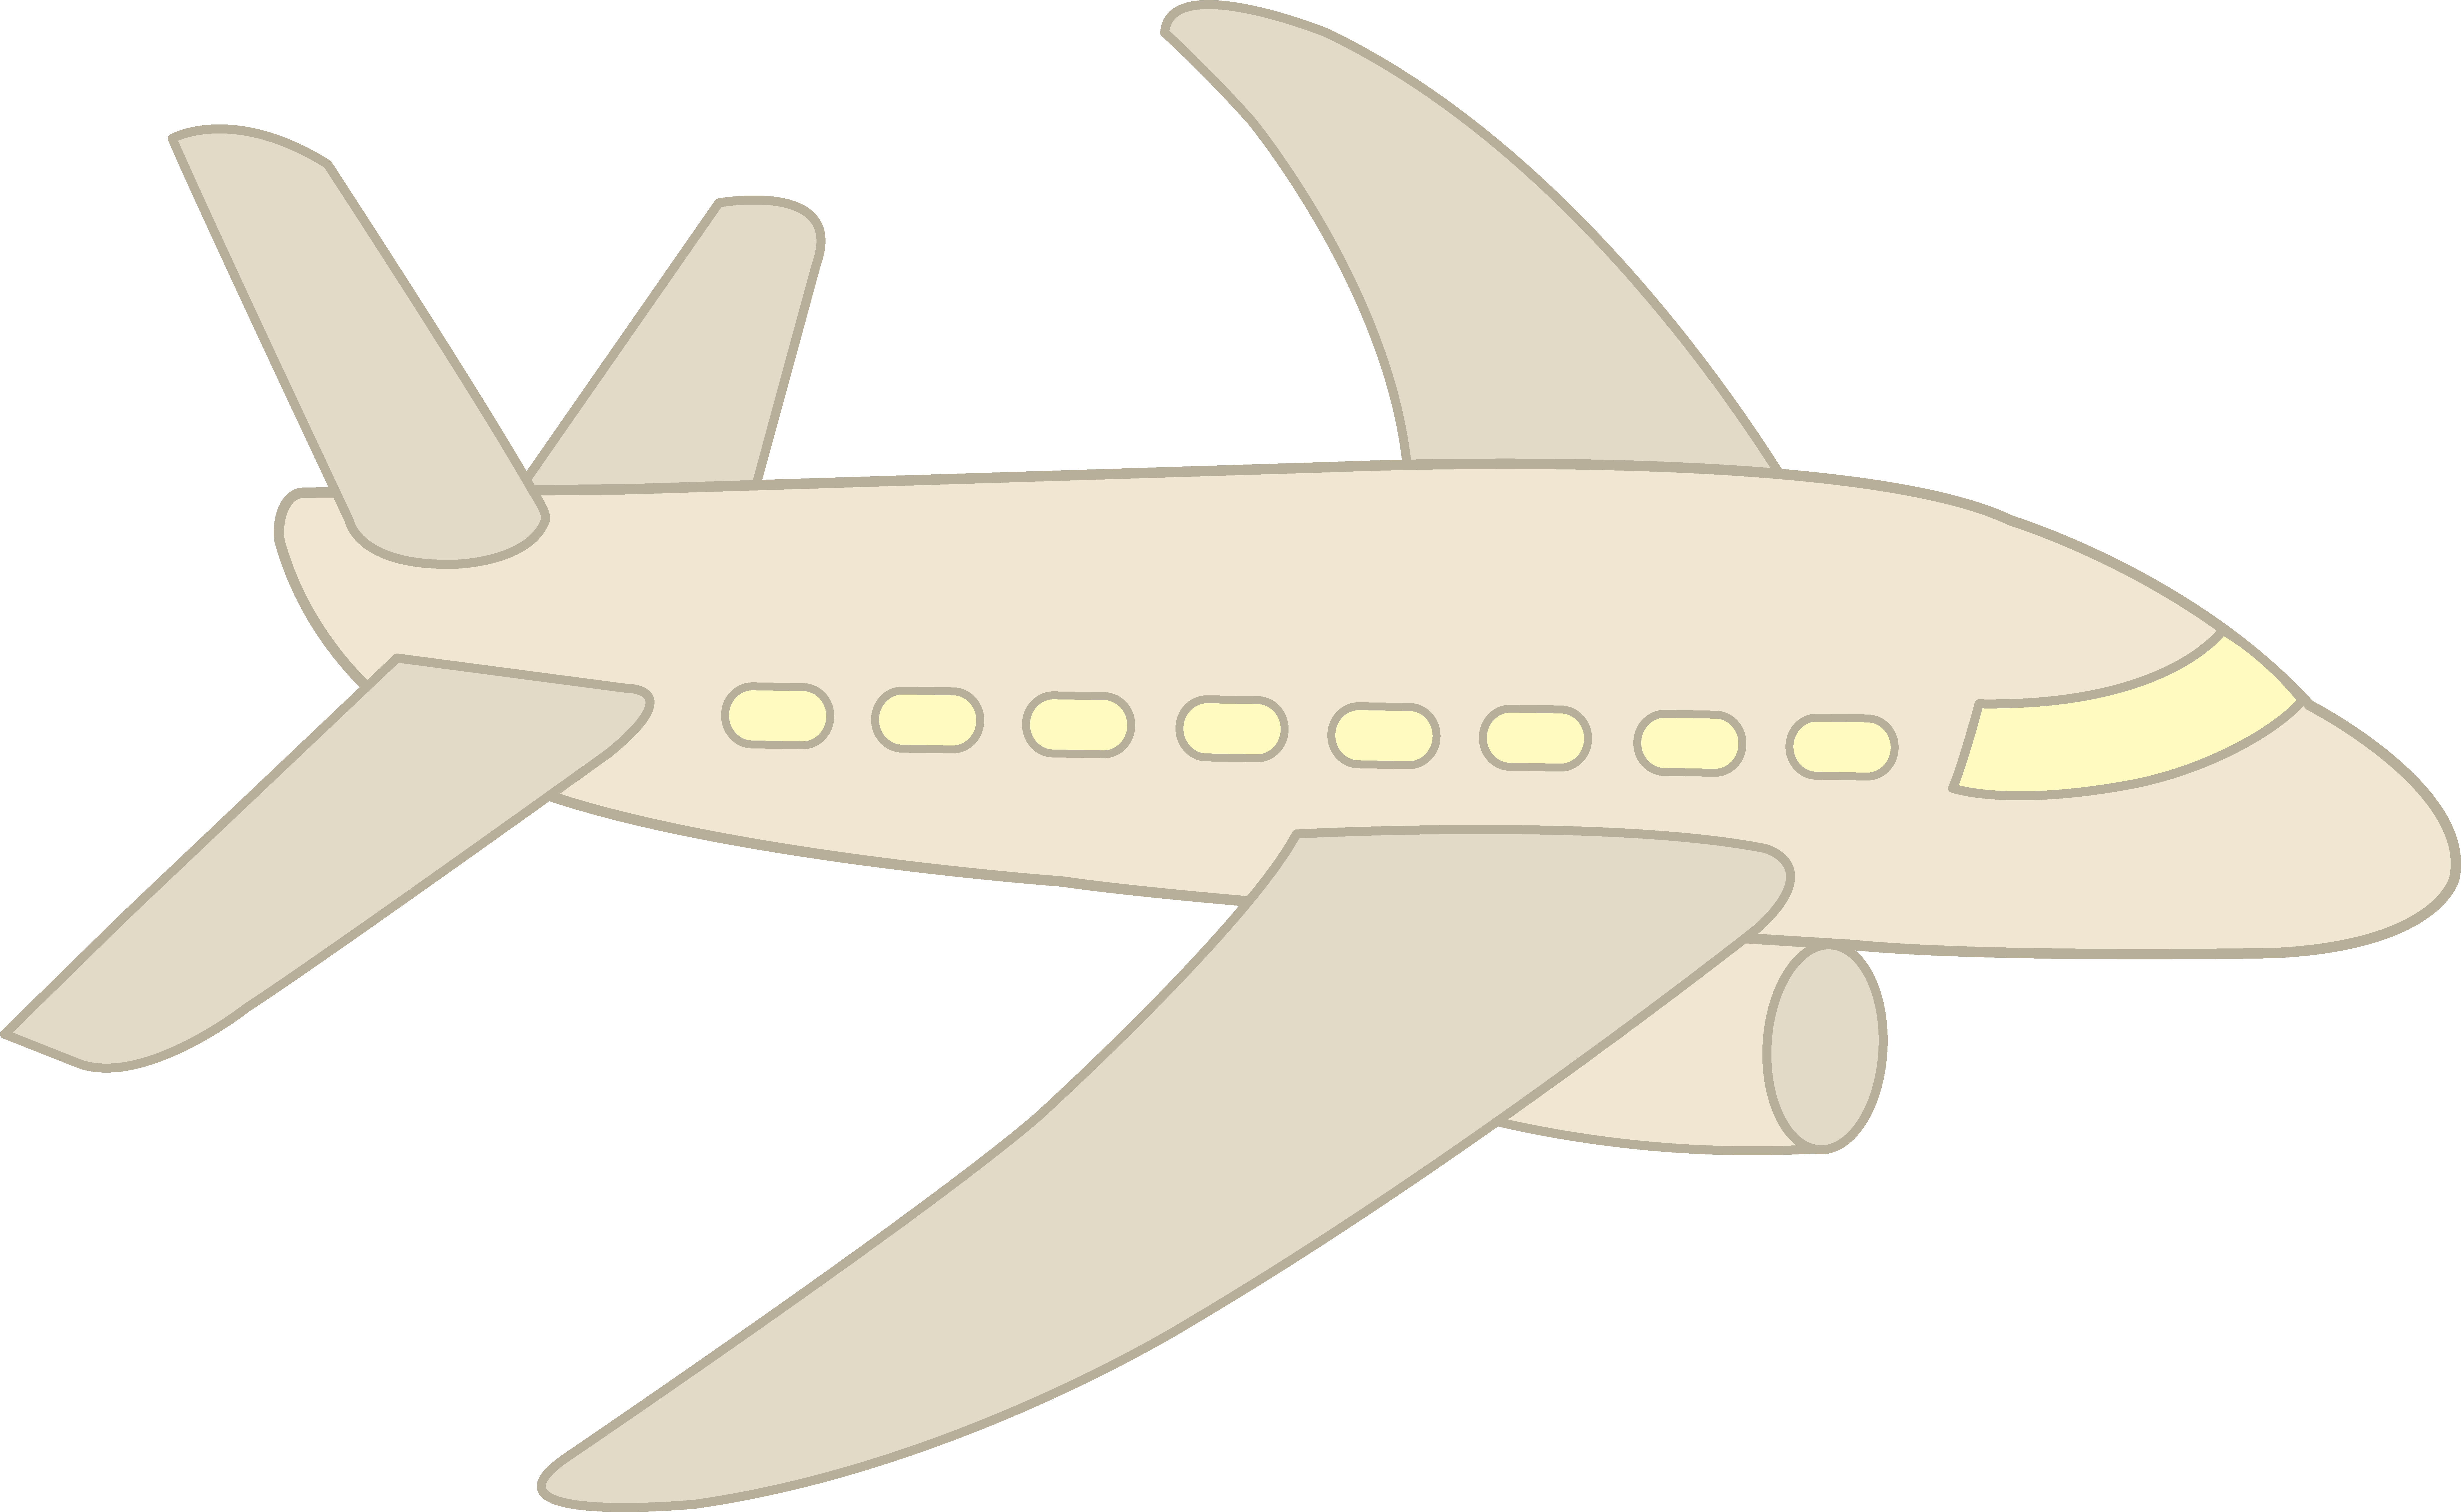 Jet clipart easy.  collection of simple